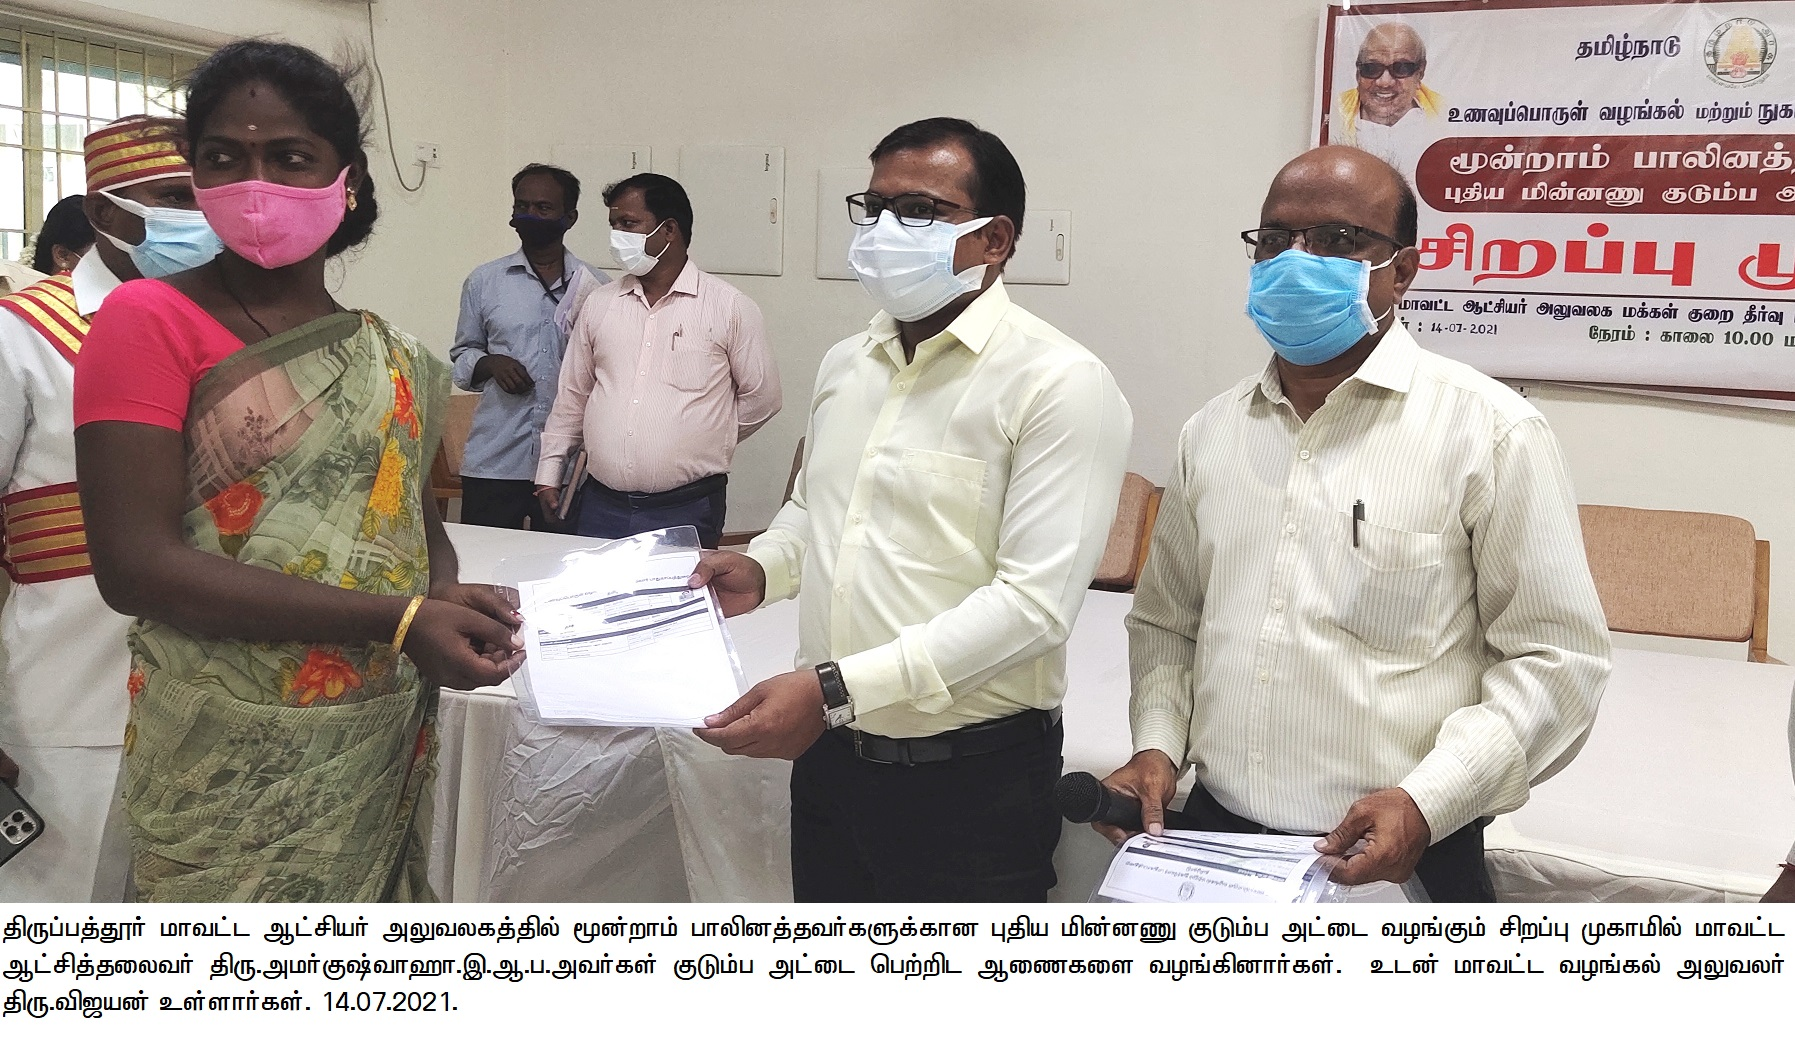 District Collector Distributed Transgenders New Family Card 14/07/2021